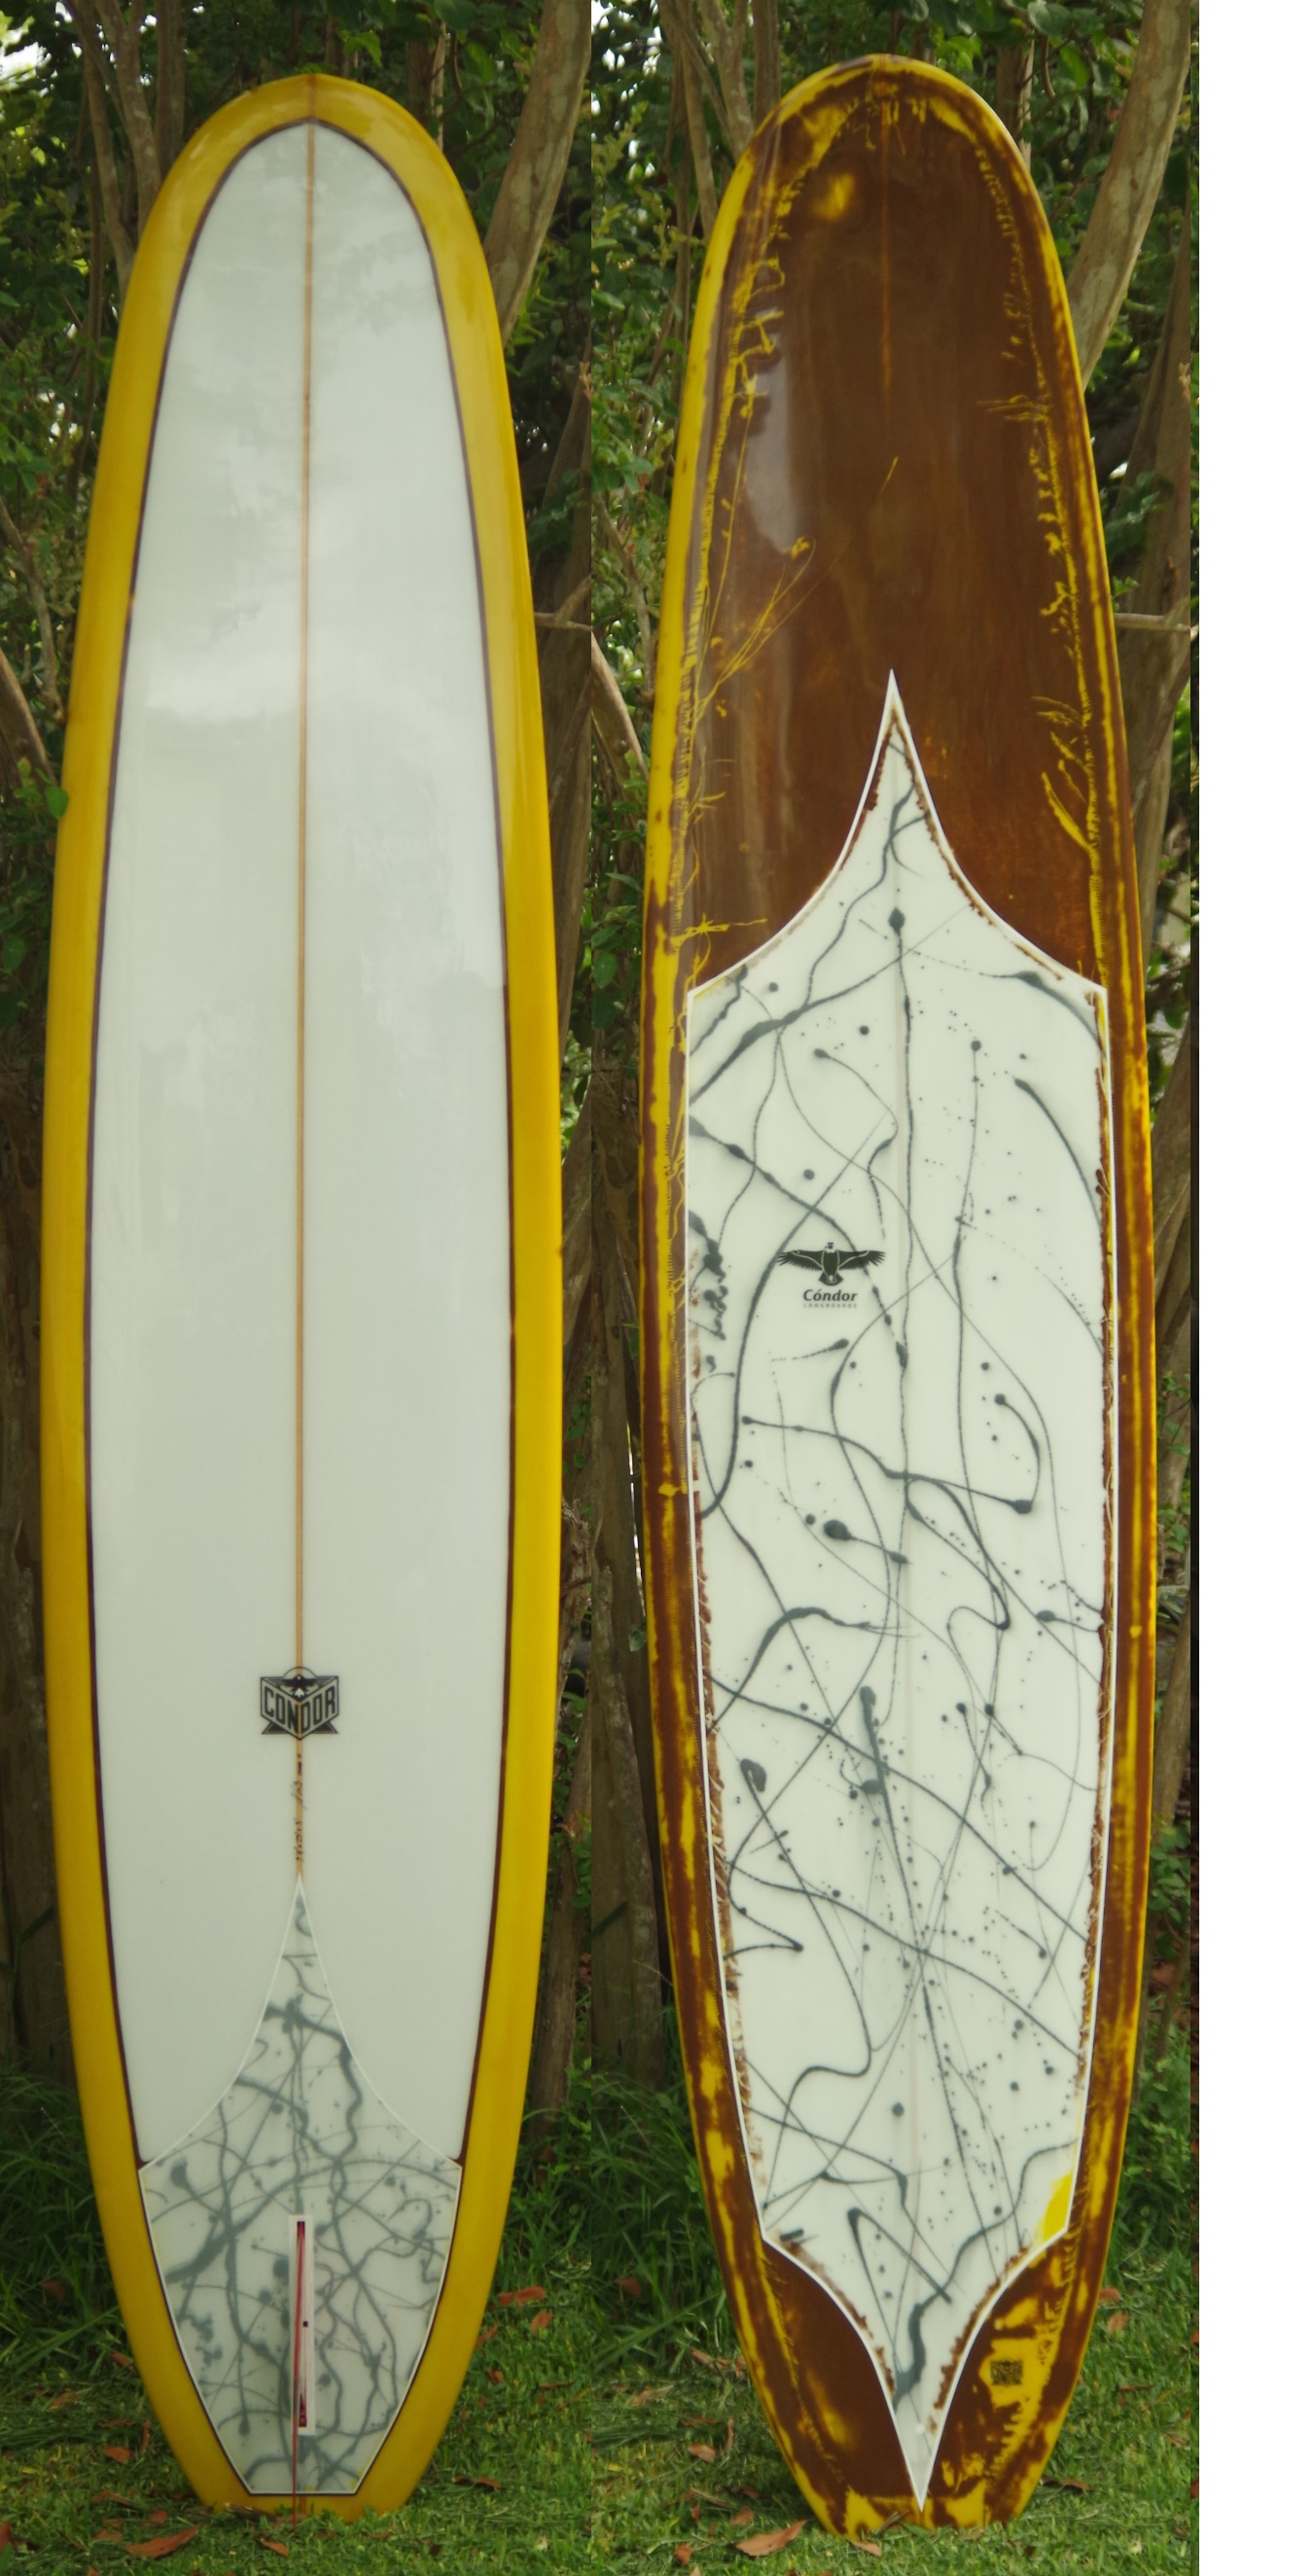 9'4 new old hull